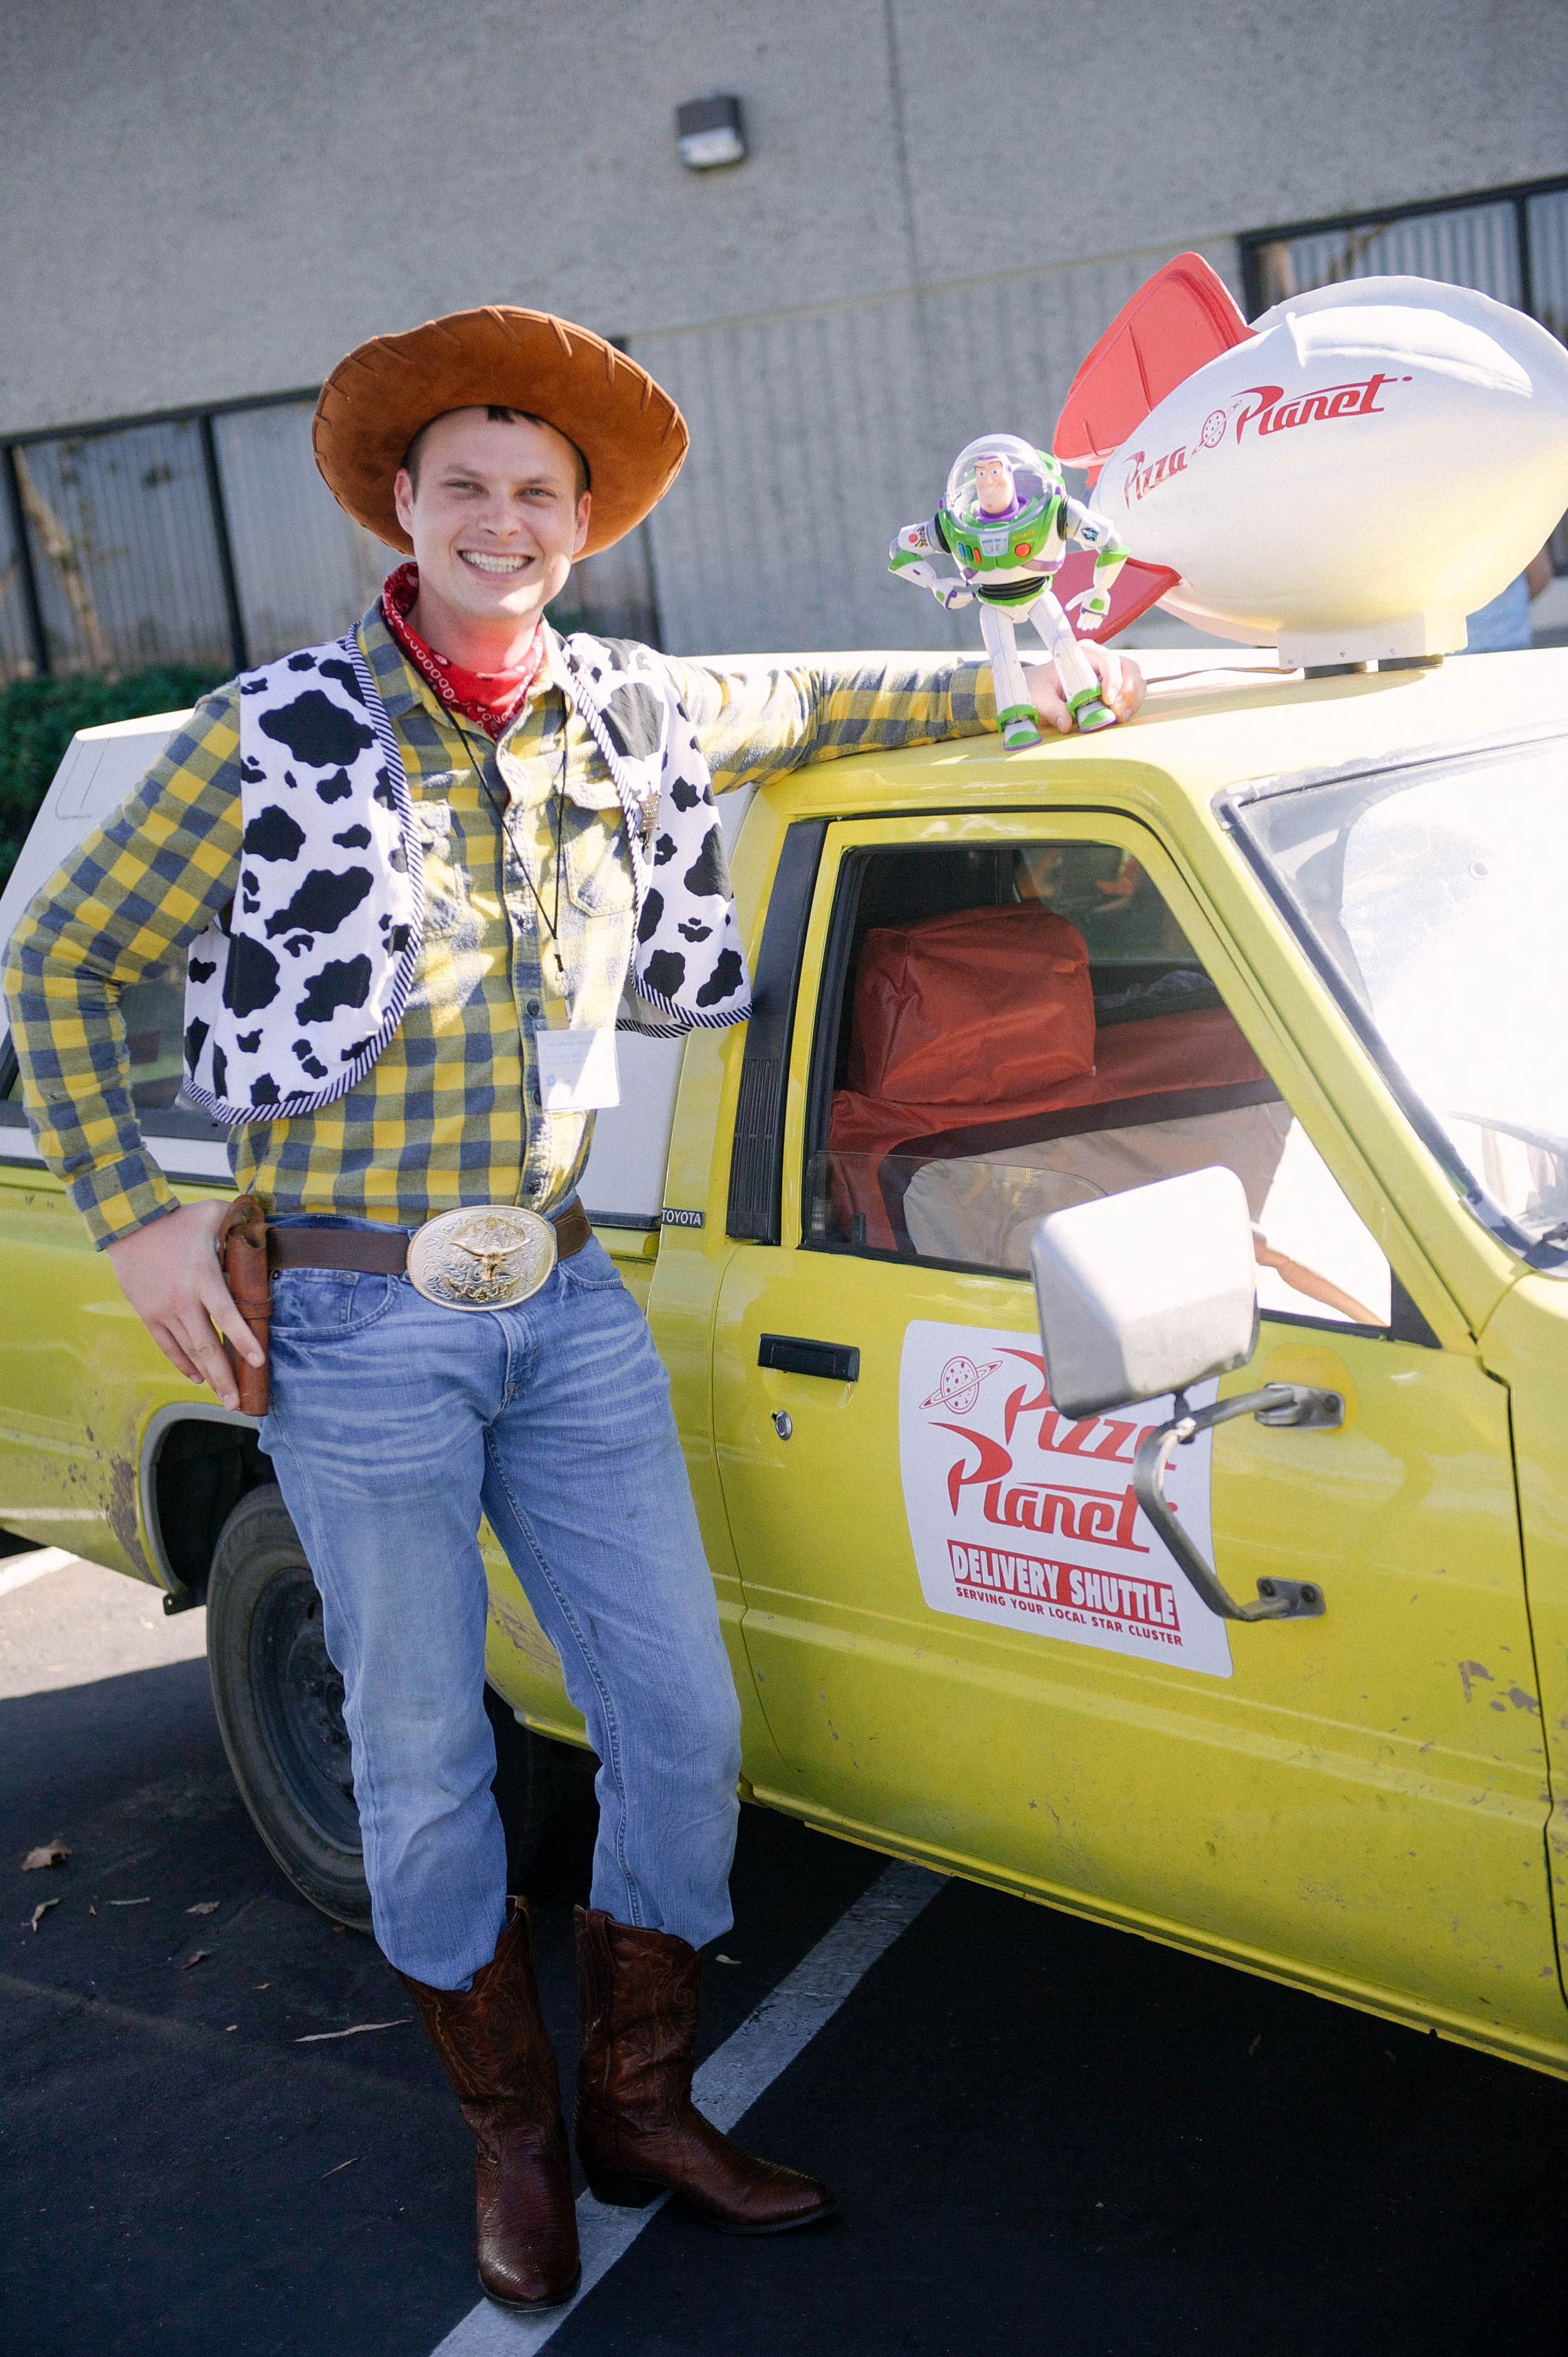 Brandon Spaulding as Toy Story's Woody with The Pizza Planet Truck. Photo by Lisa Diaz.